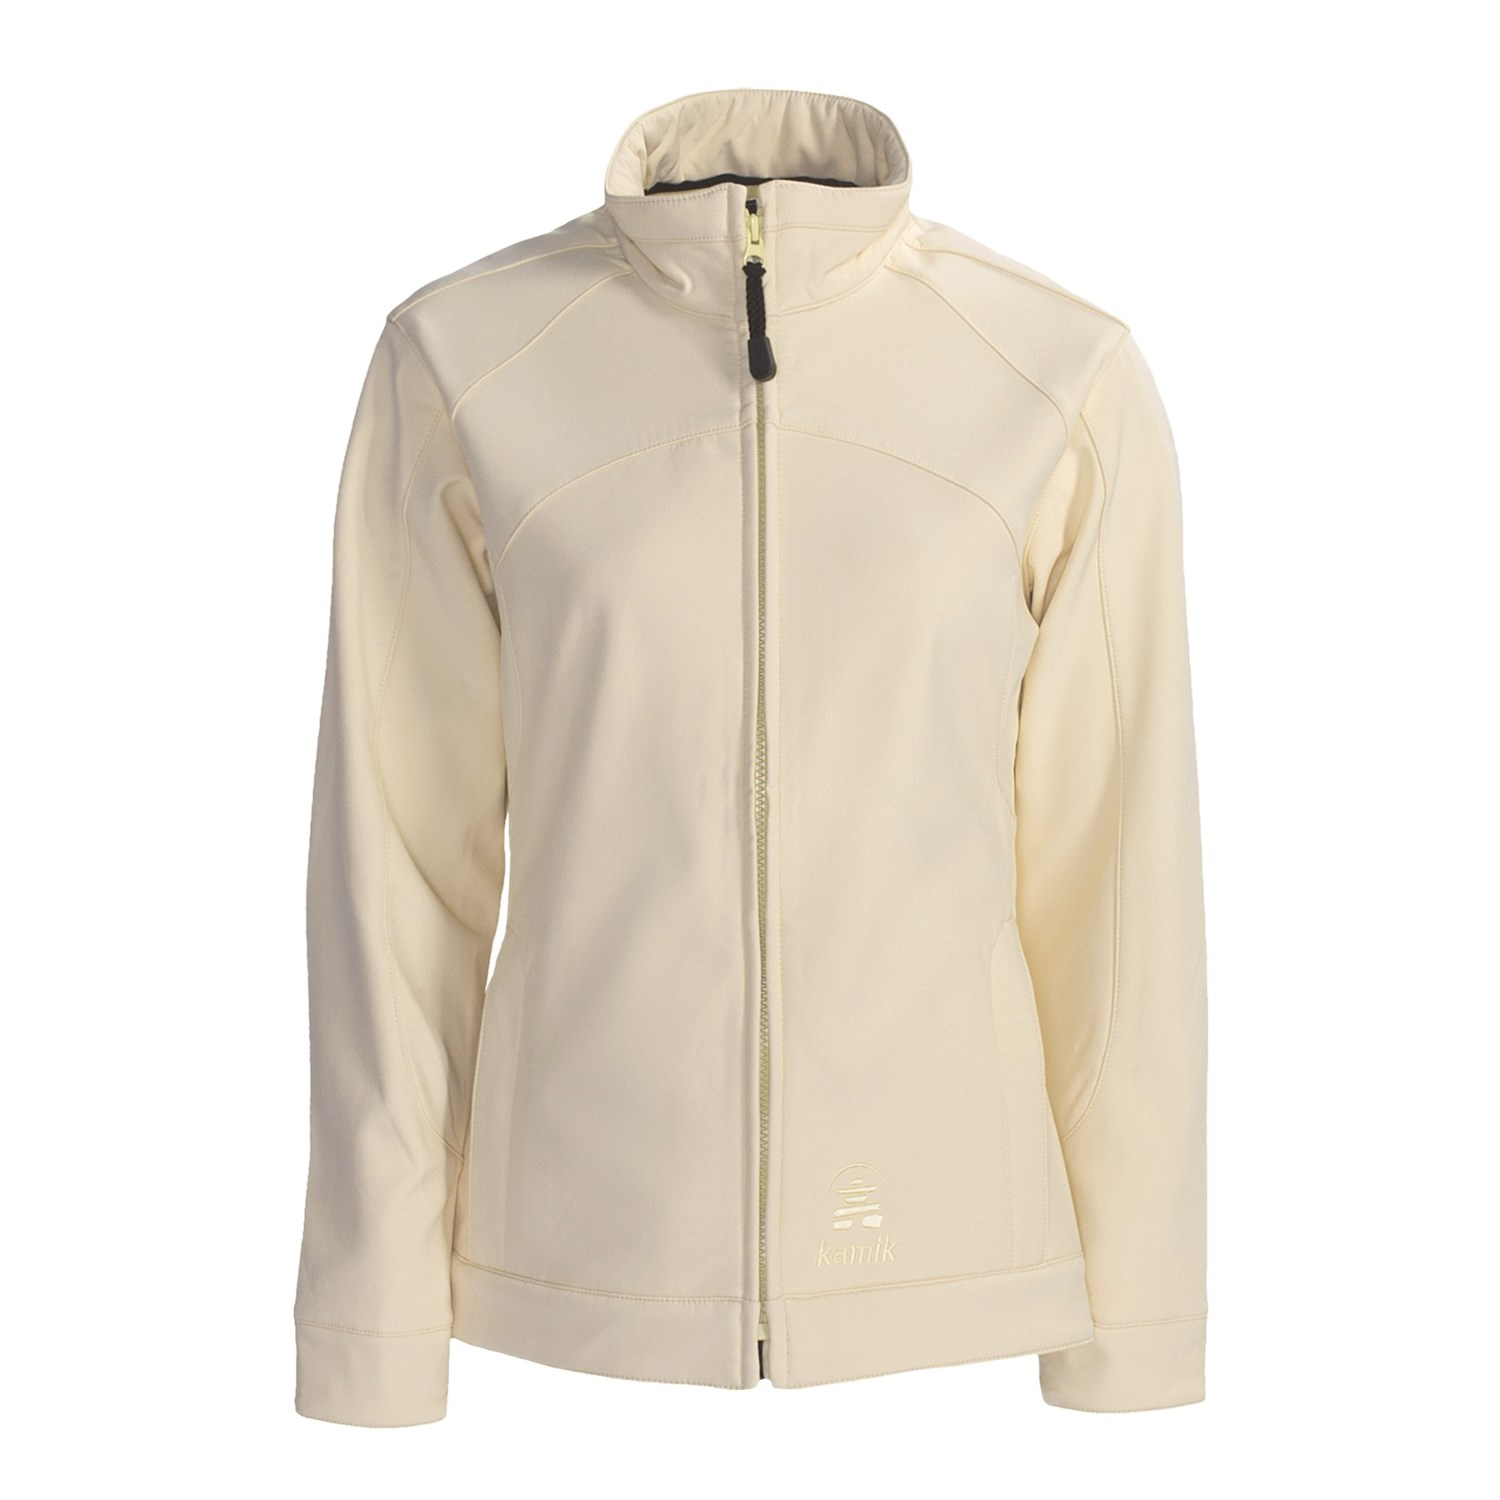 kamik soft shell jacket for women in ivory. Black Bedroom Furniture Sets. Home Design Ideas